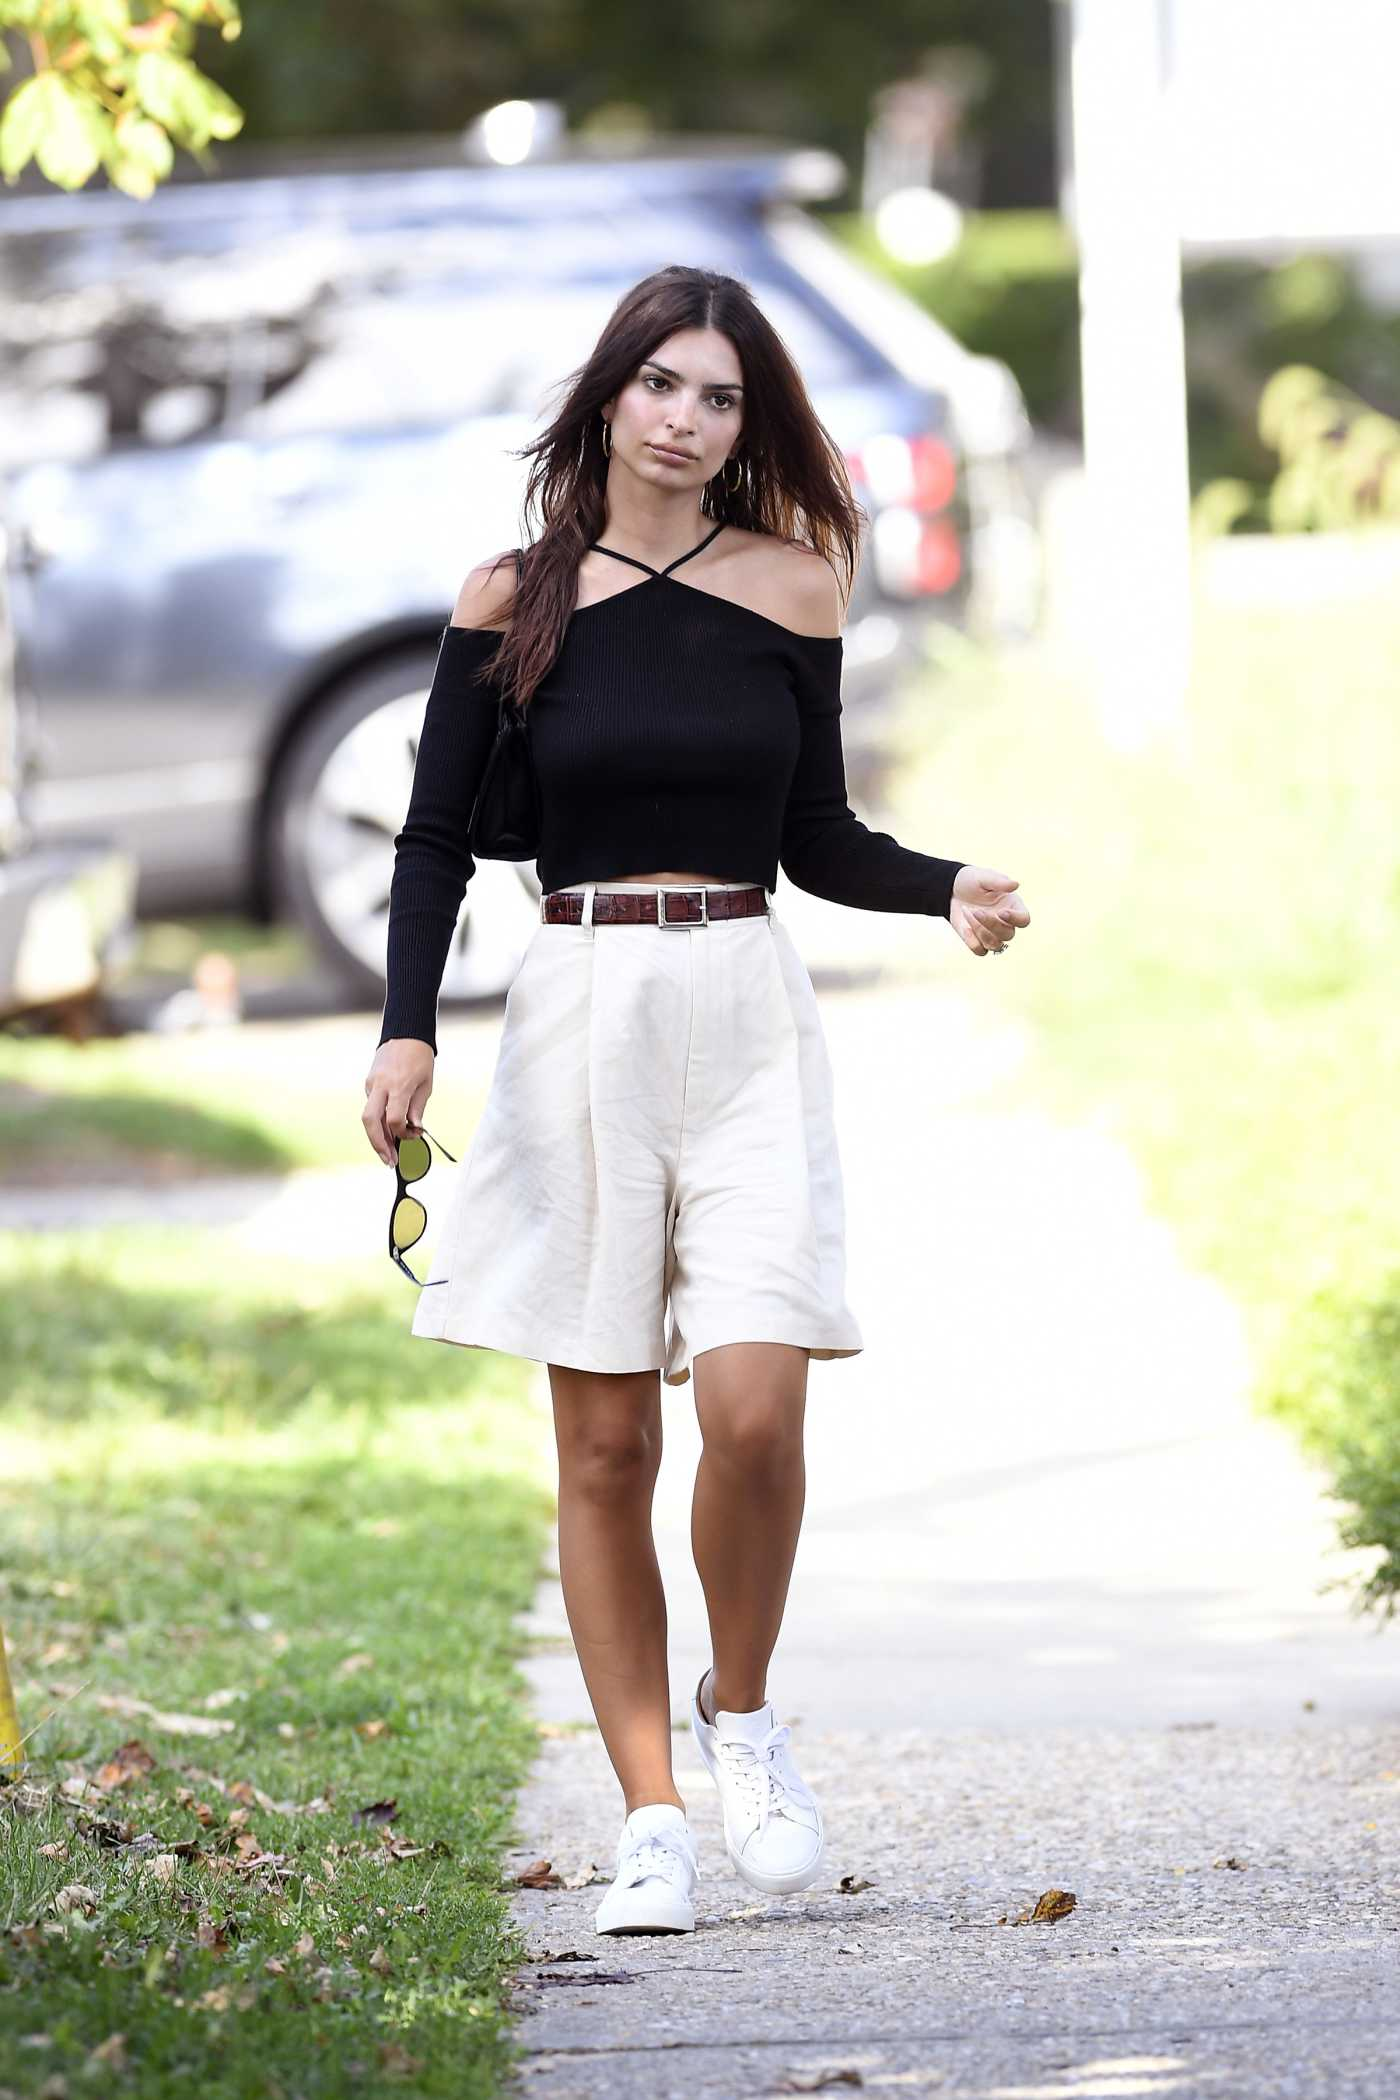 Emily Ratajkowski in a Black Top Was Seen Out in New York 08/23/2020